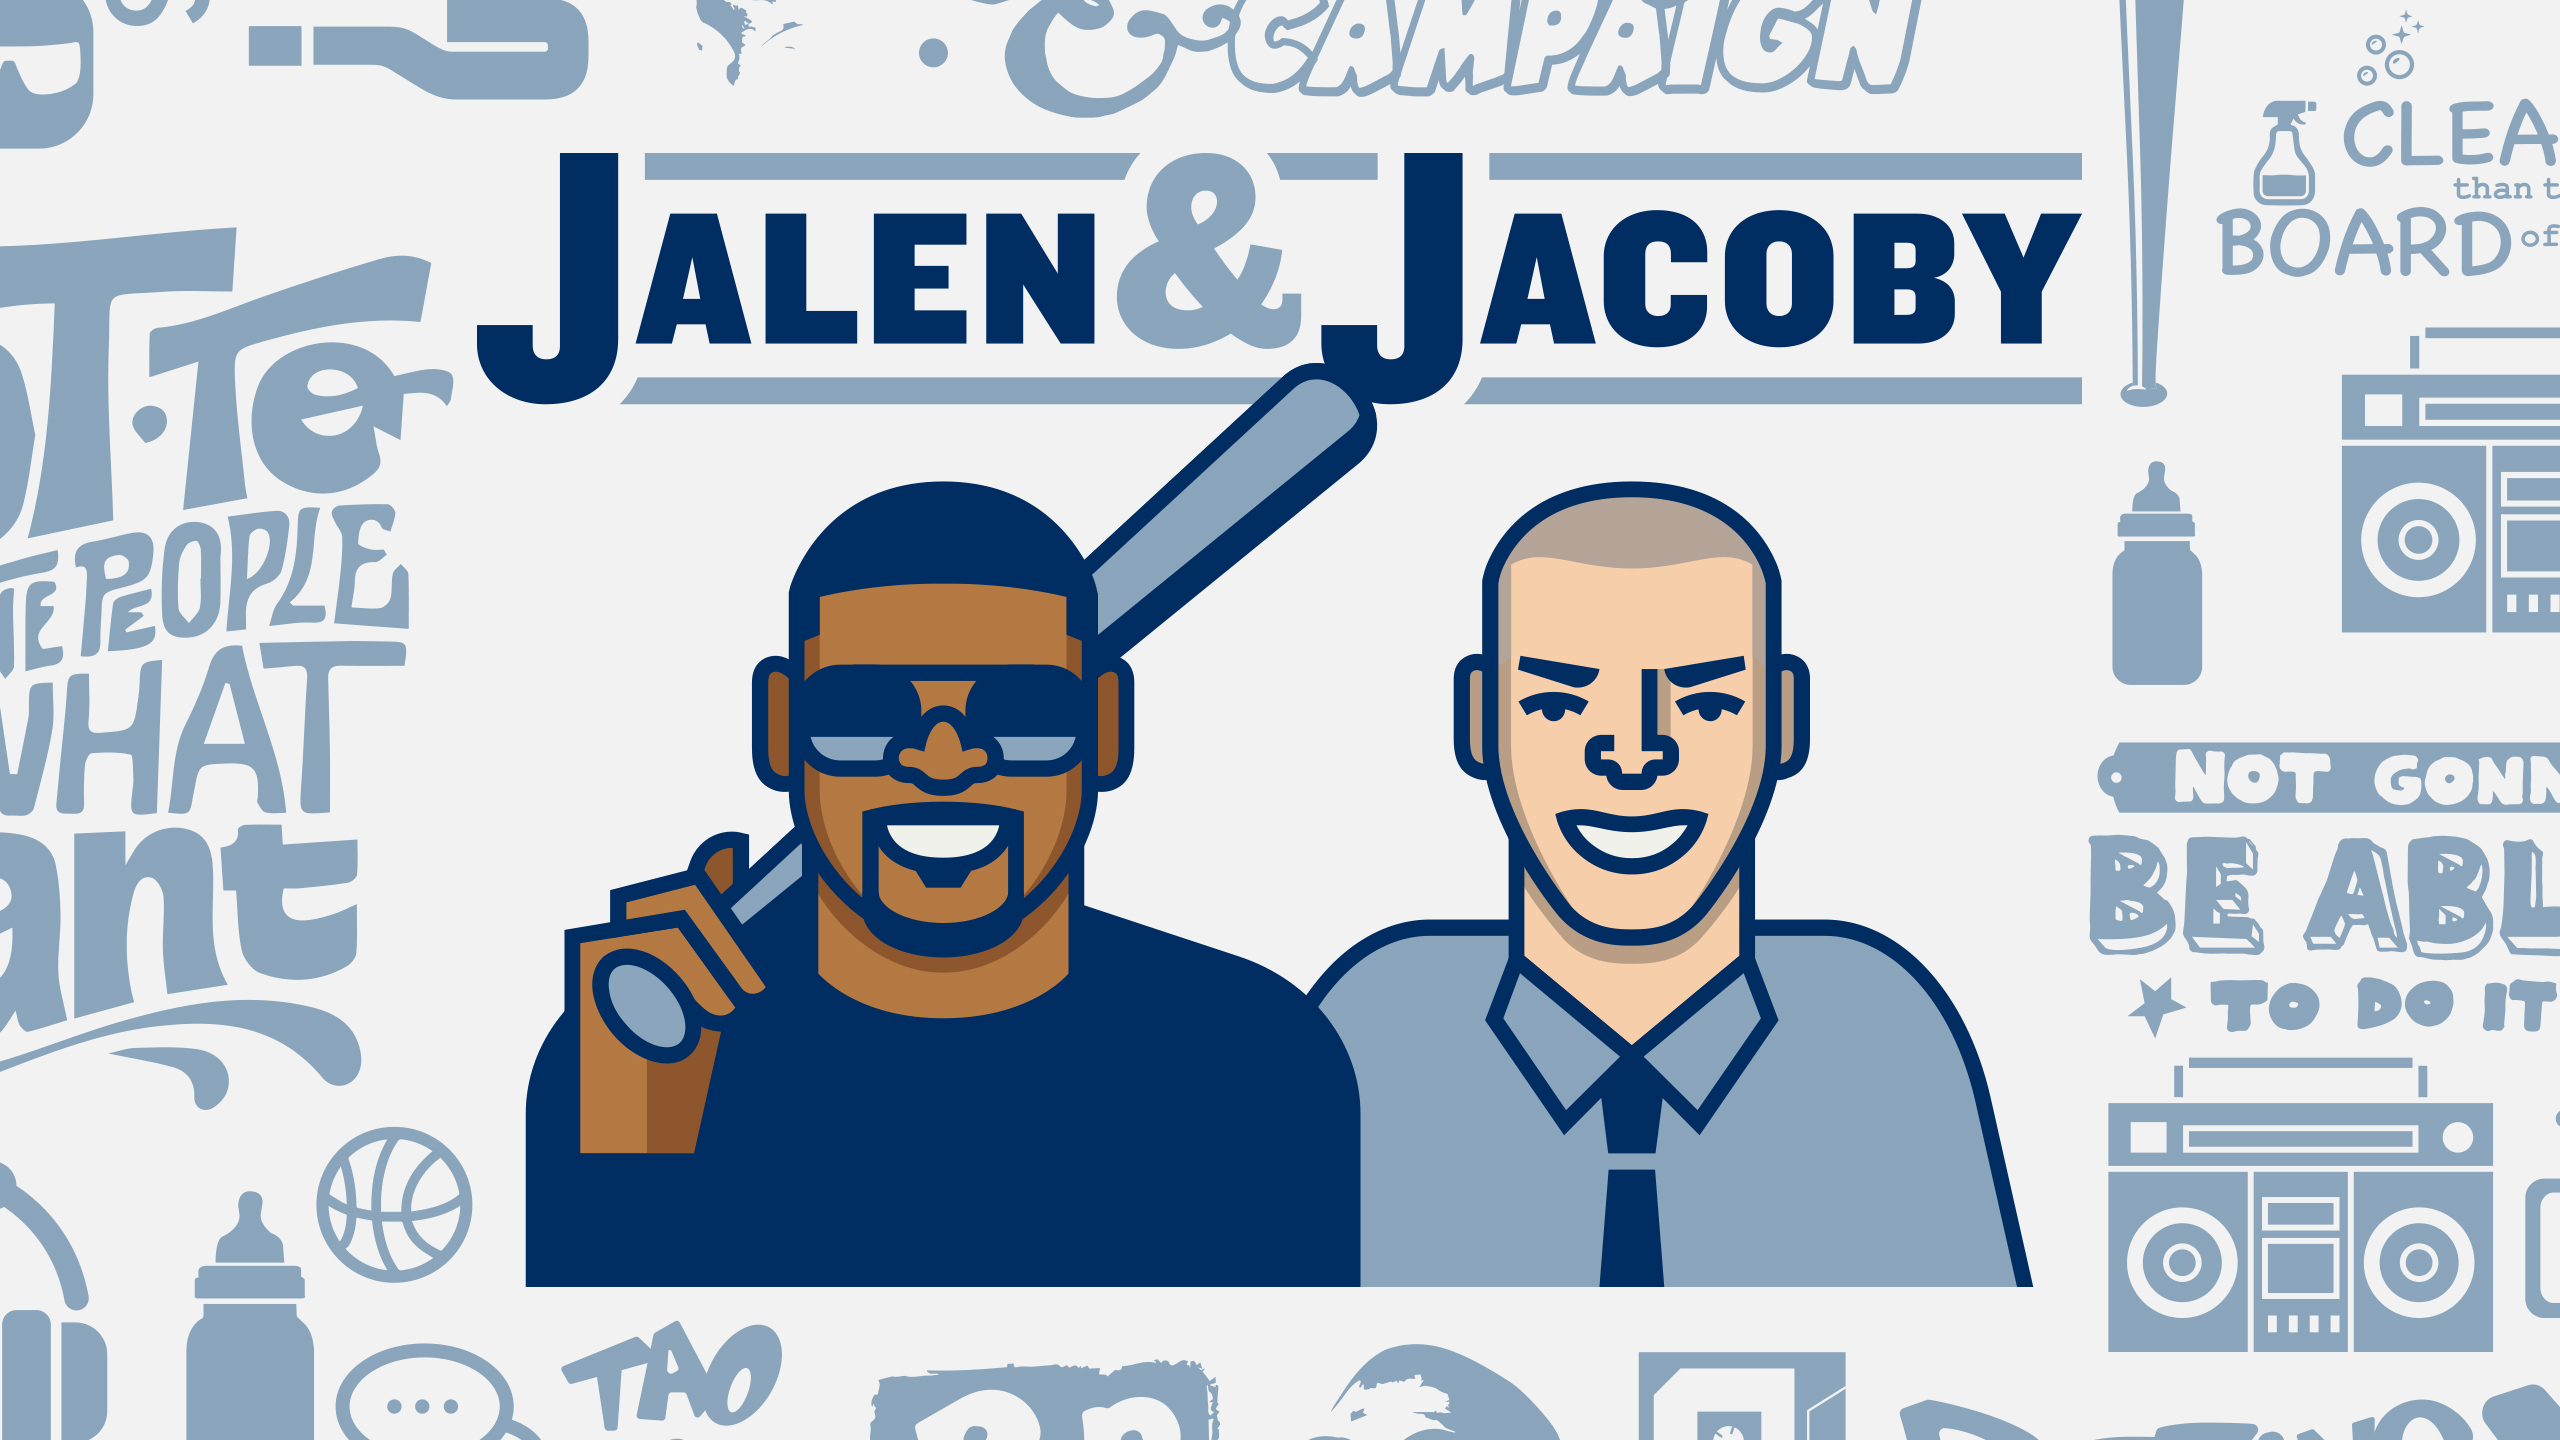 Tue, 11/13 - Jalen & Jacoby